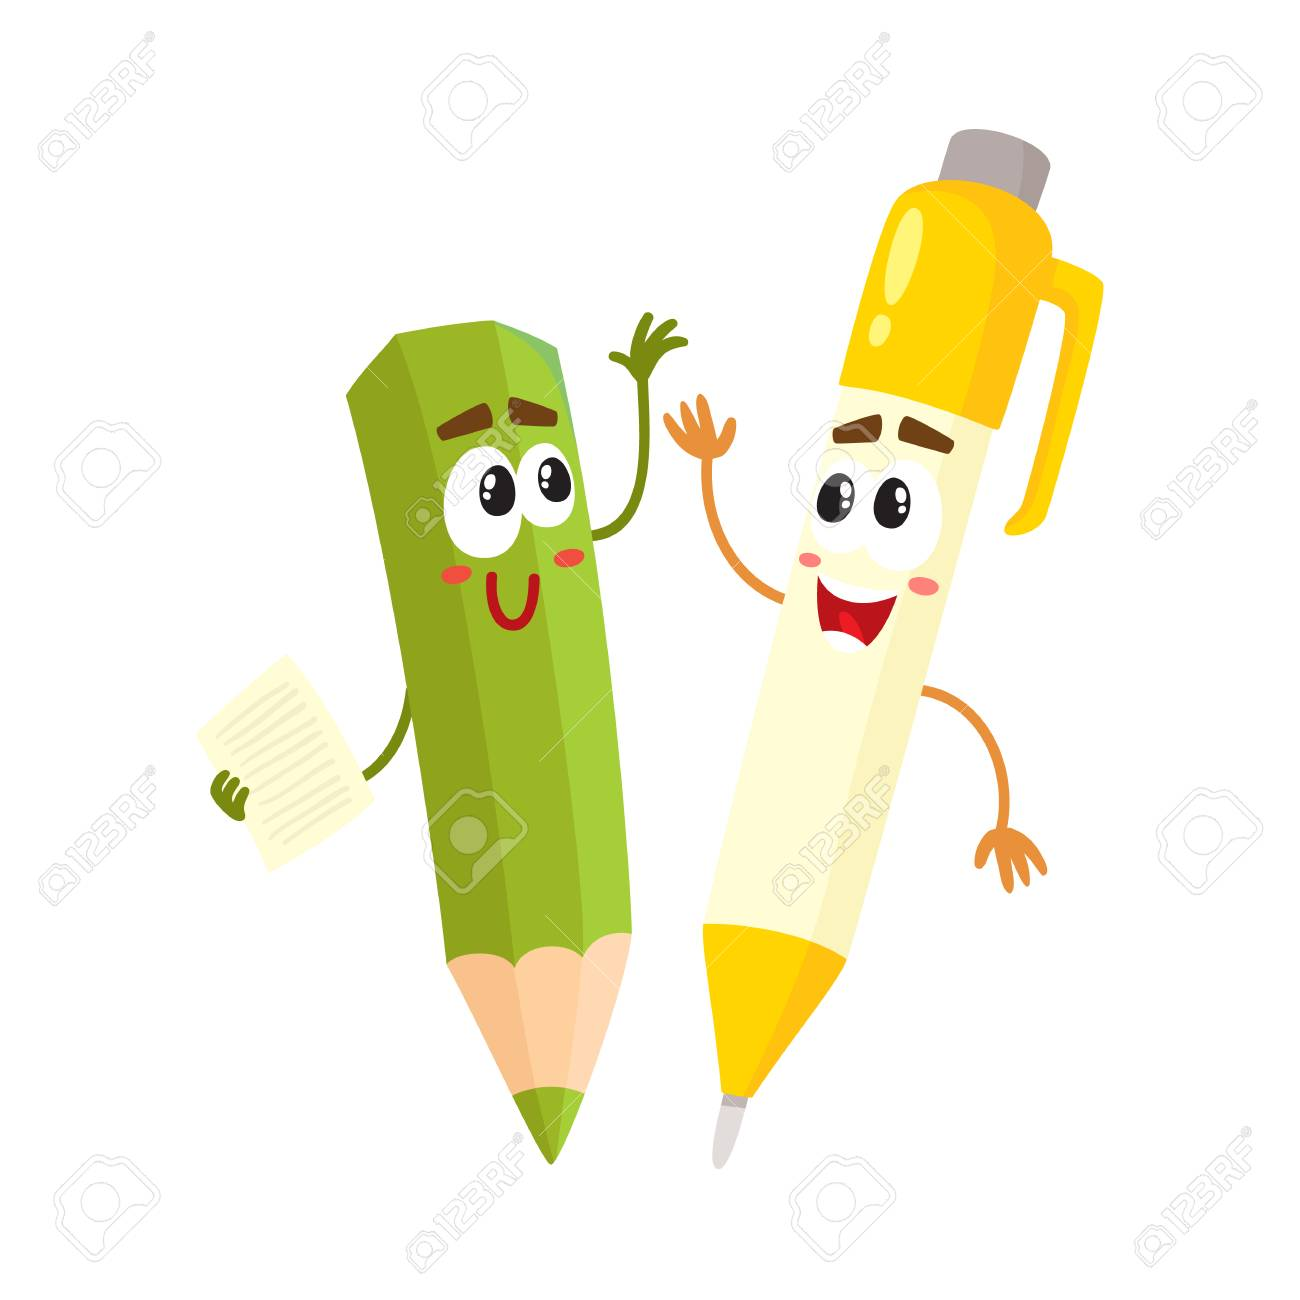 Cute, Funny Pen And Pencil Characters With Smiling Human Faces.. Royalty  Free Cliparts, Vectors, And Stock Illustration. Image 80785204.